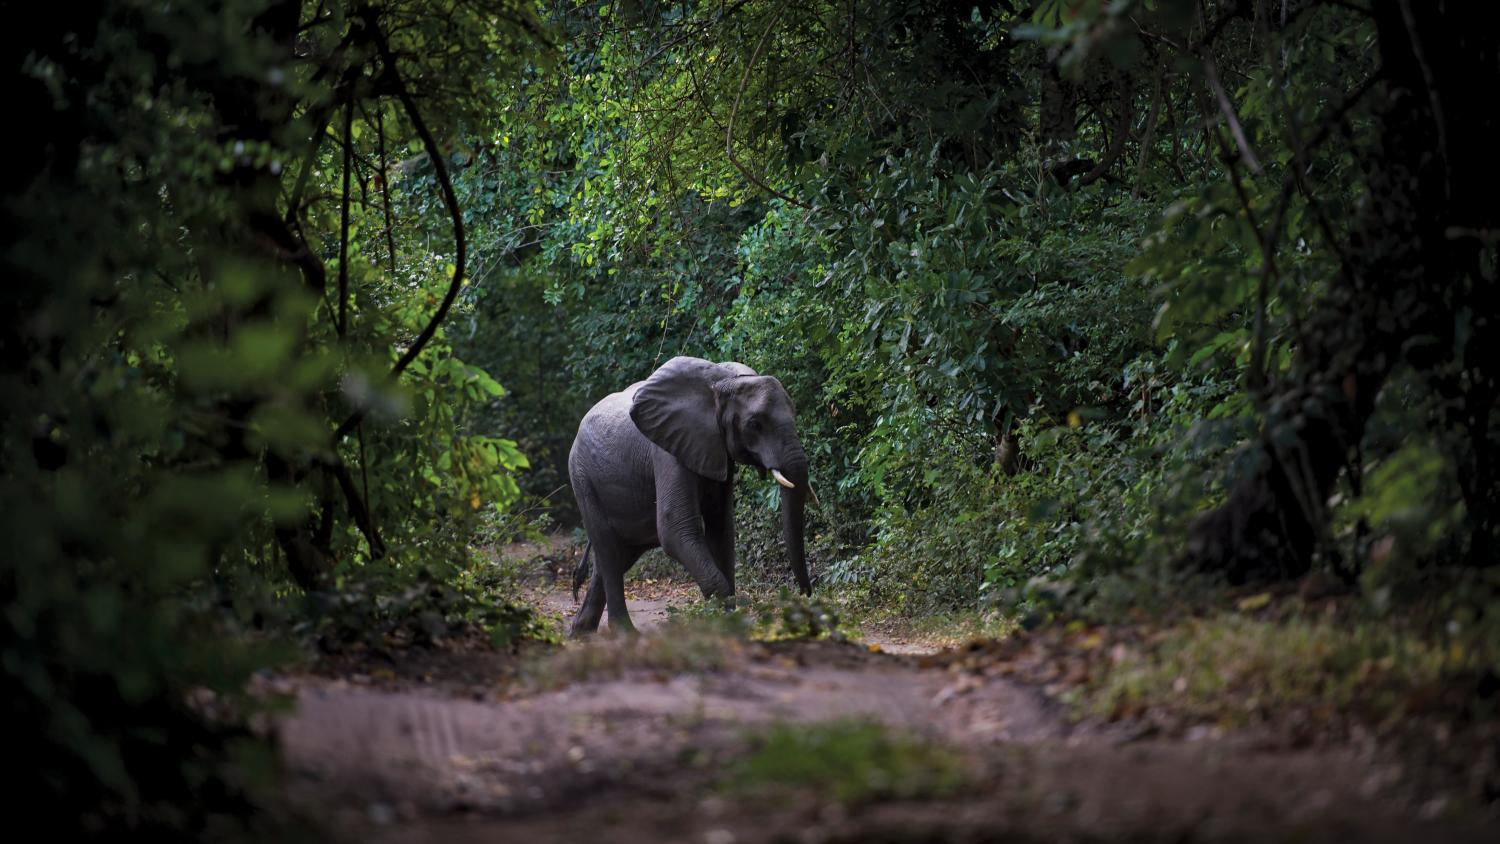 elephant walking through the forest in Tanzania, Africa.